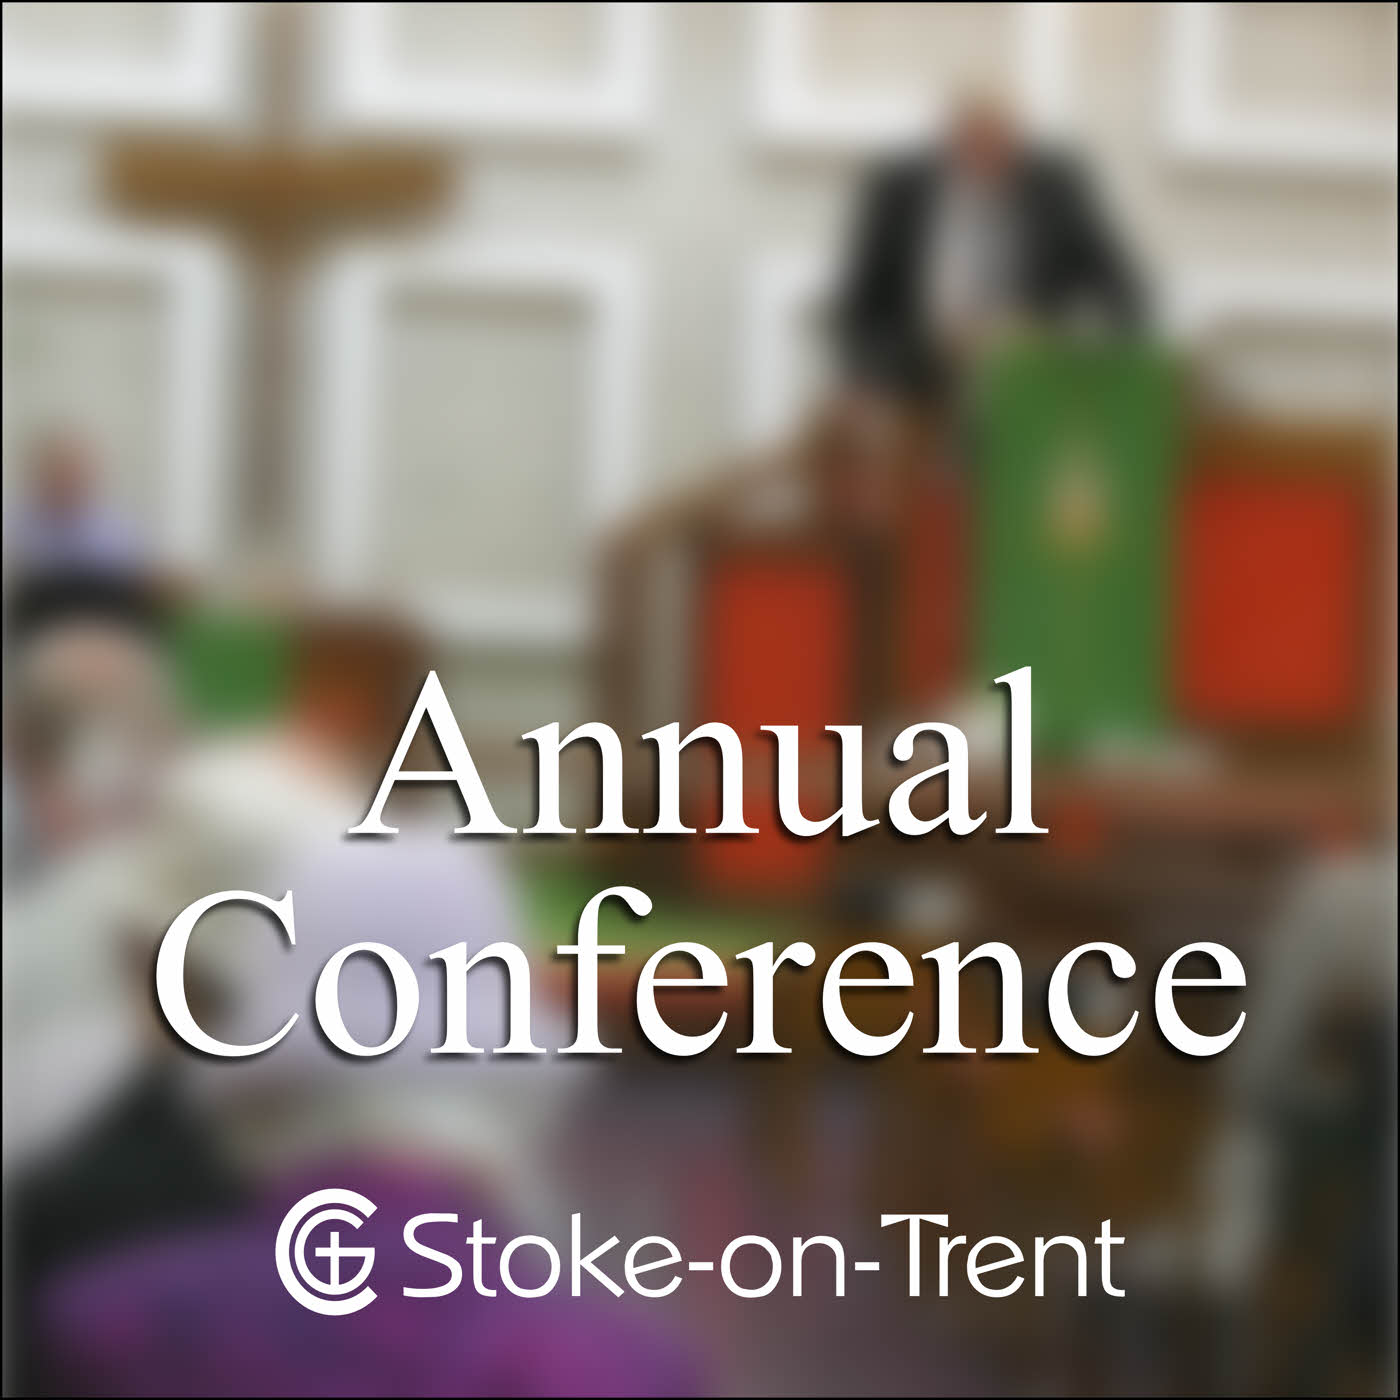 Annual Conference - The Church of God in Stoke-on-Trent